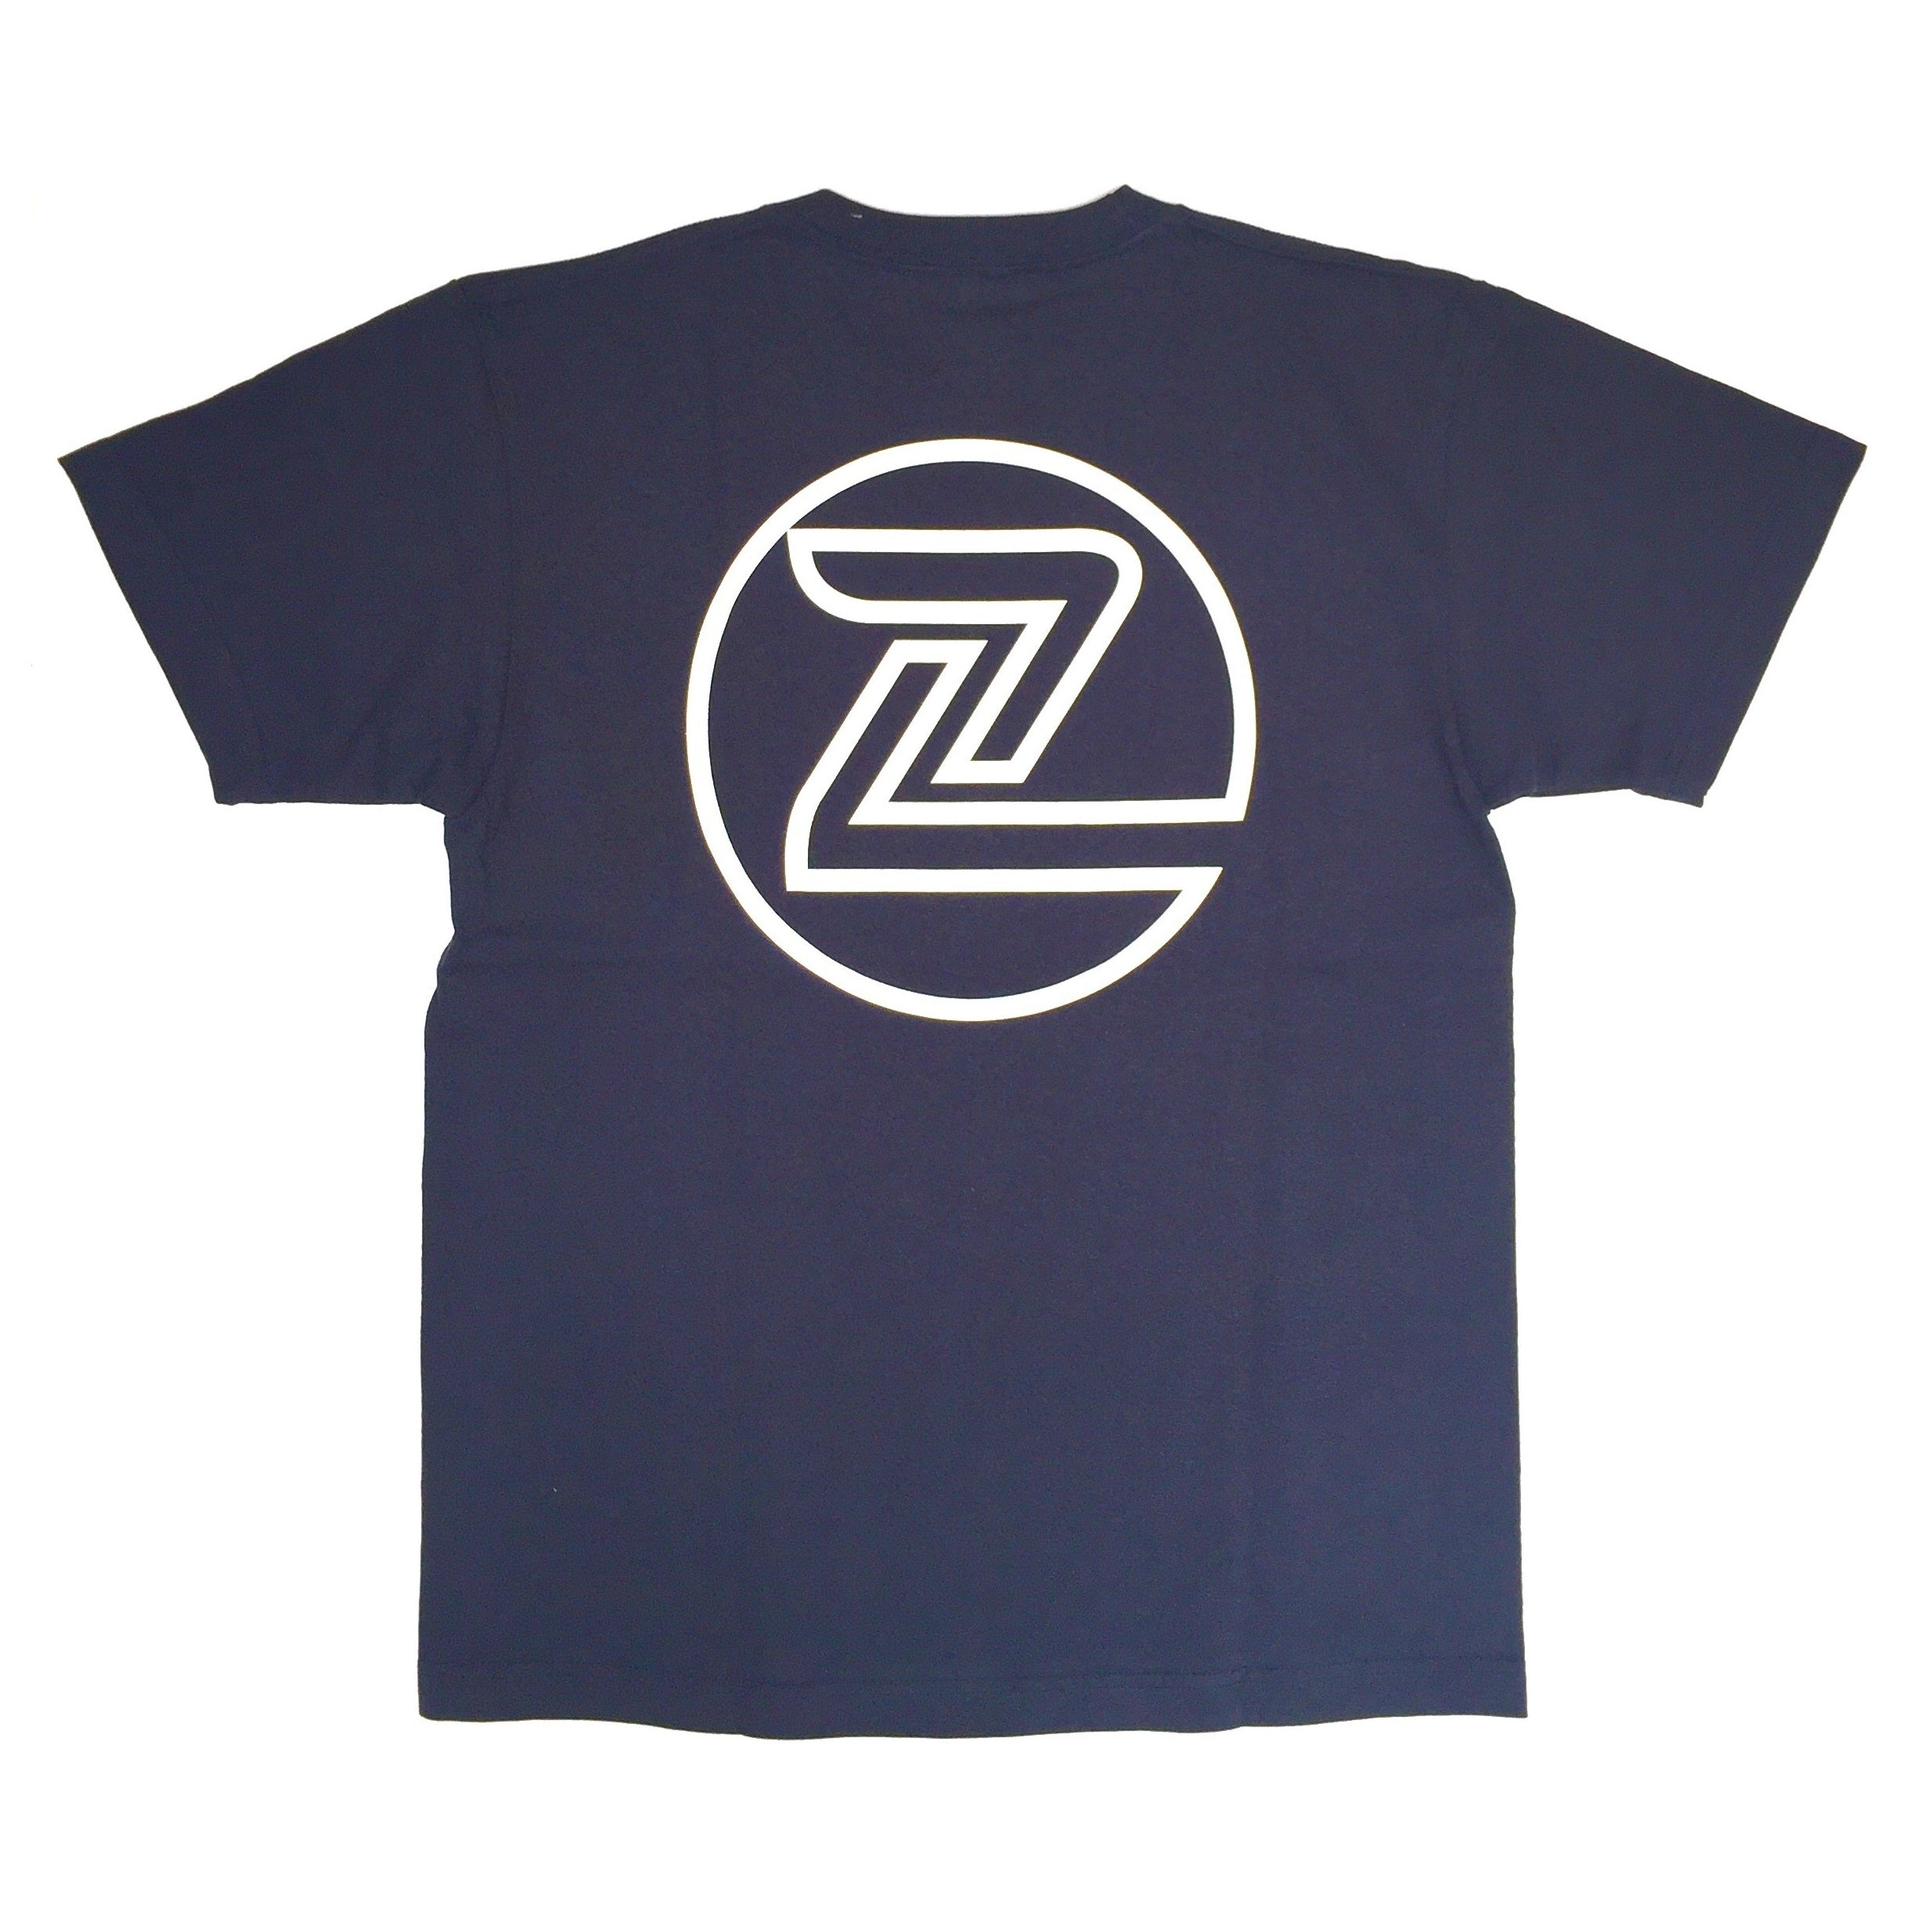 Z-TMARUZu3000NAVY-Z-FLEX SKATEBOARDS JAPAN OFFICIALu3010u516cu5f0fu901au8ca9u3011